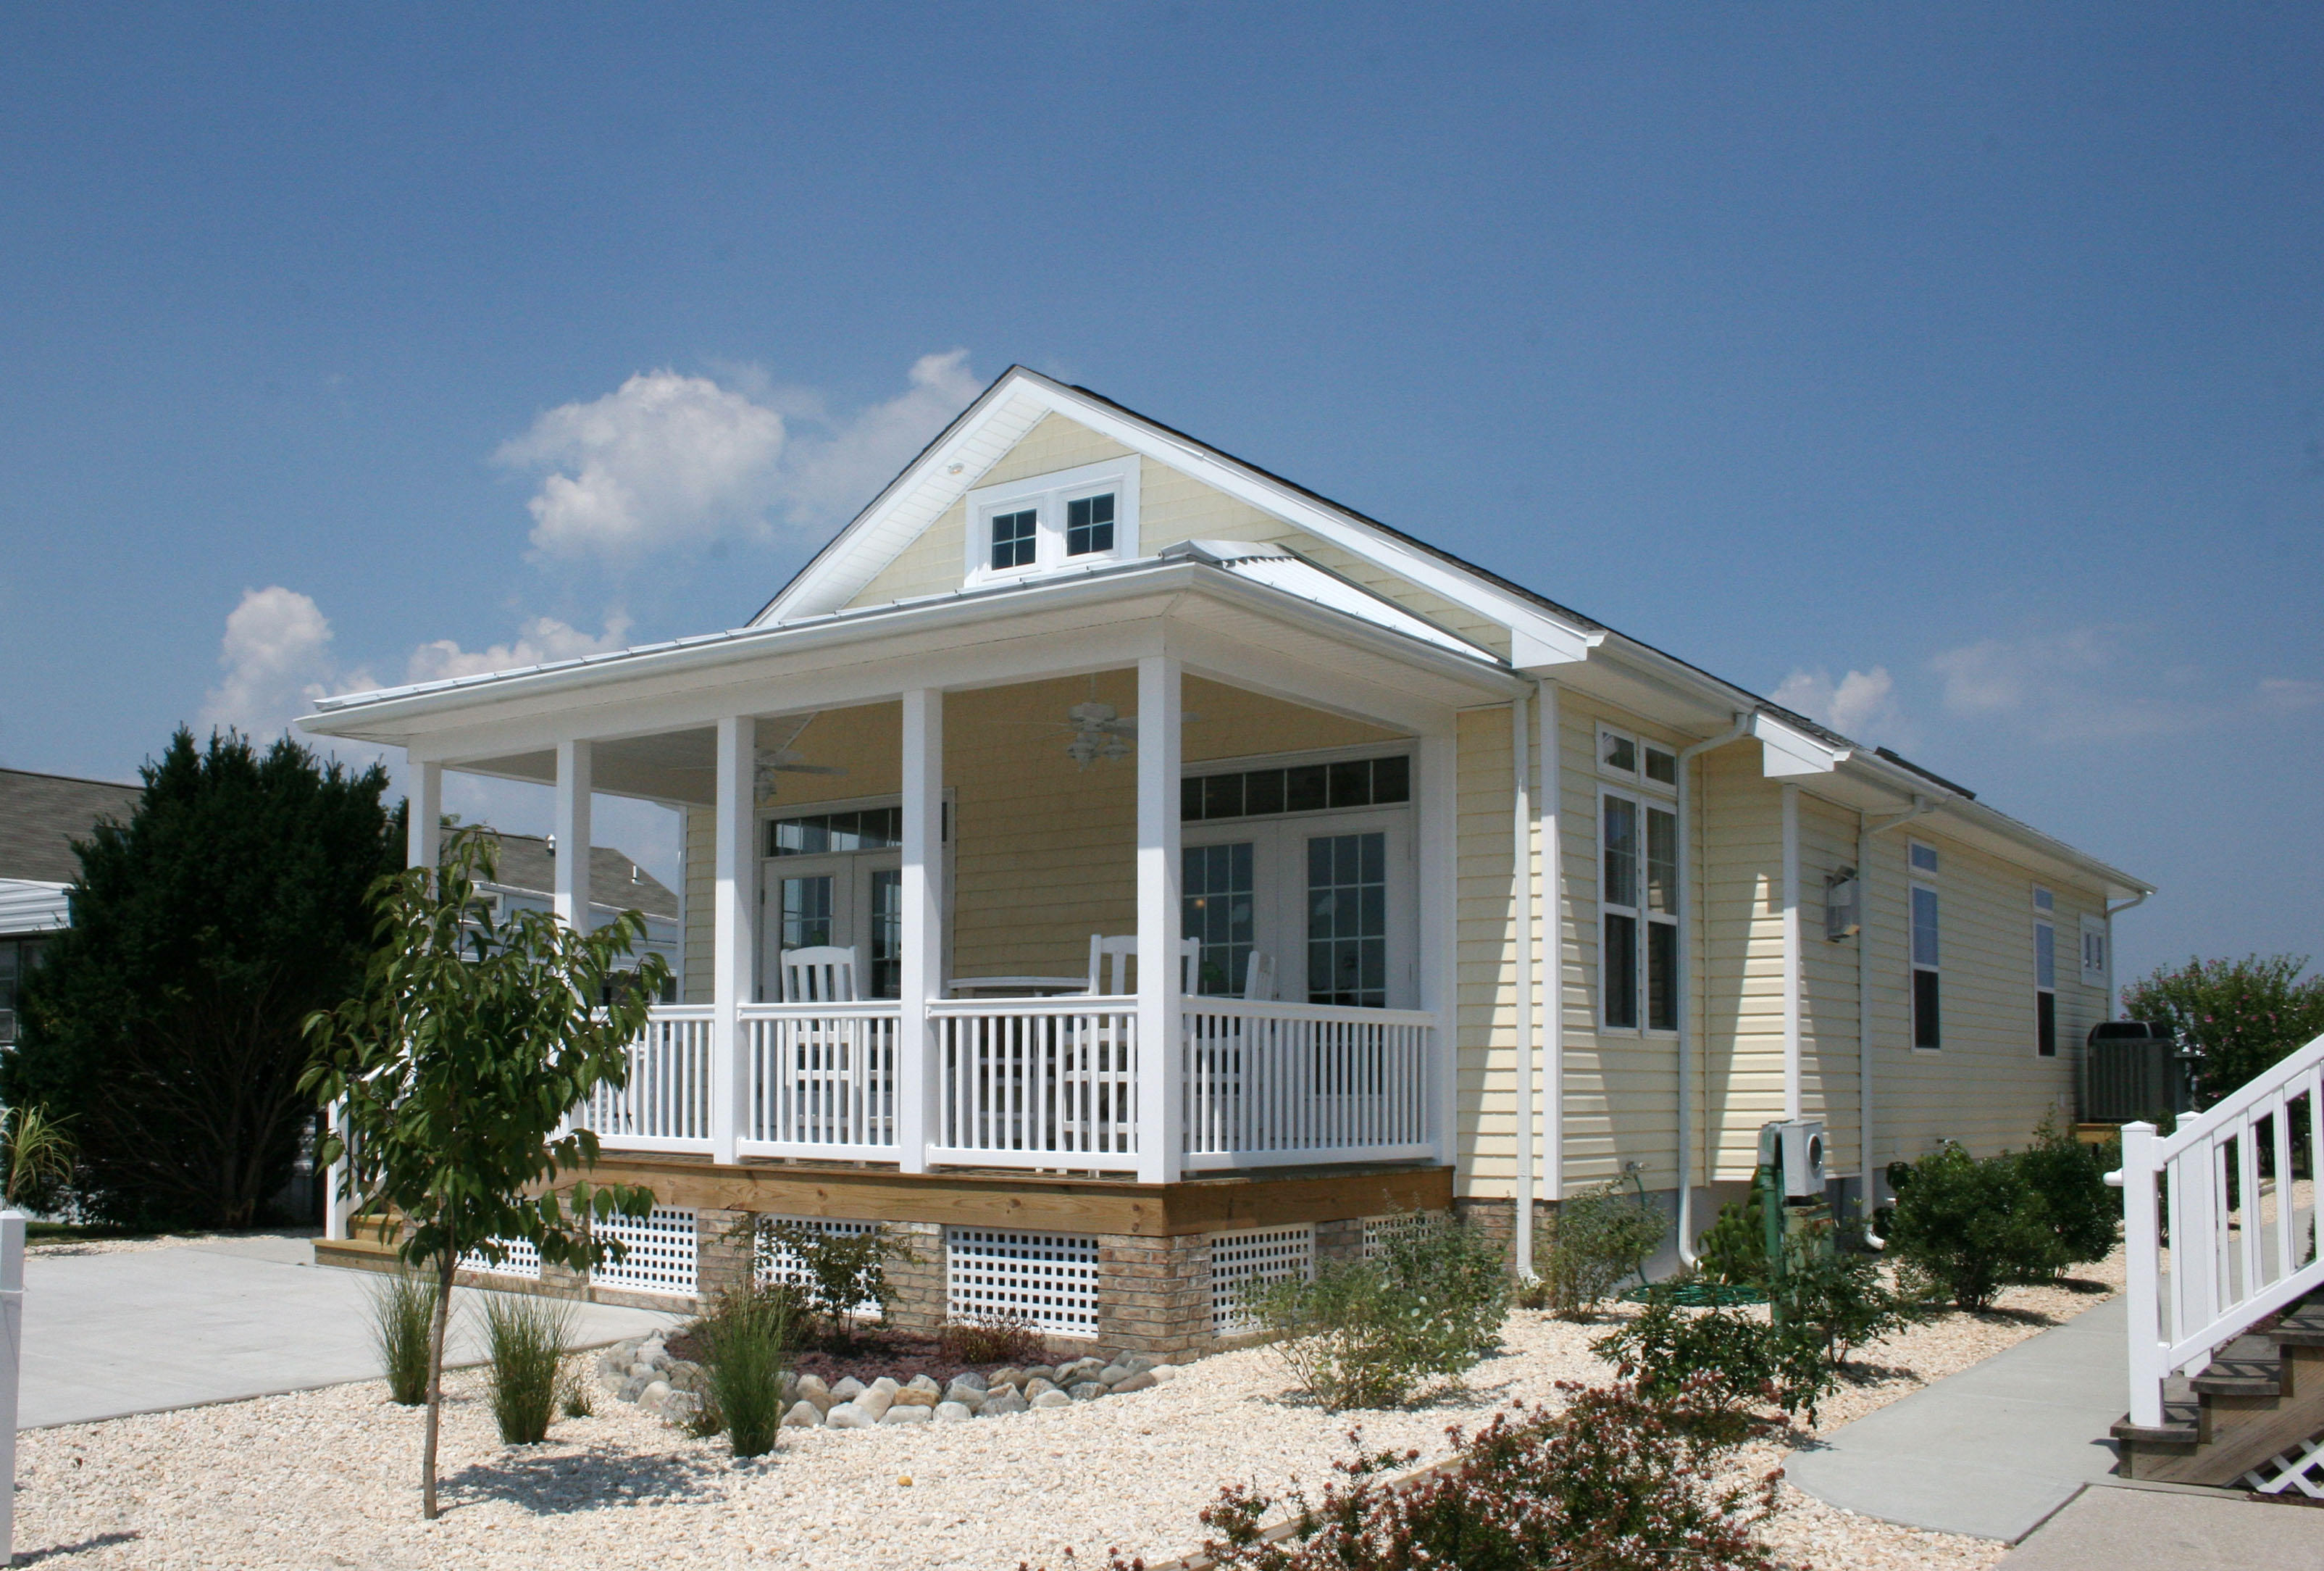 Resort homes llc in ocean city md 21842 for Maryland home builders